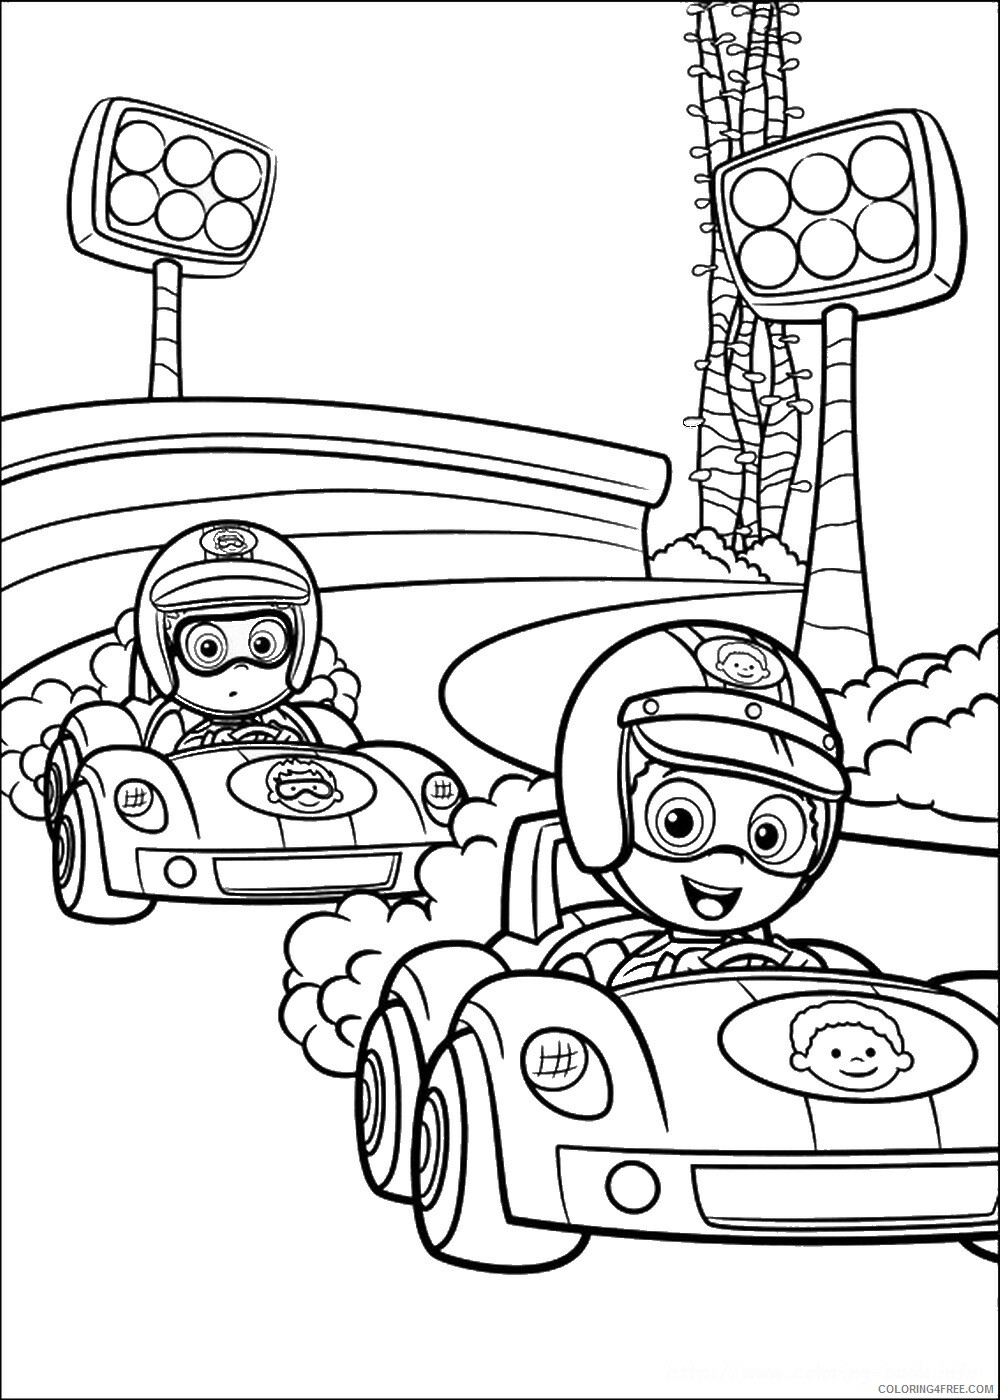 Bubble Guppies Coloring Pages TV Film bubble_guppies_cl02 Printable 2020 01533 Coloring4free